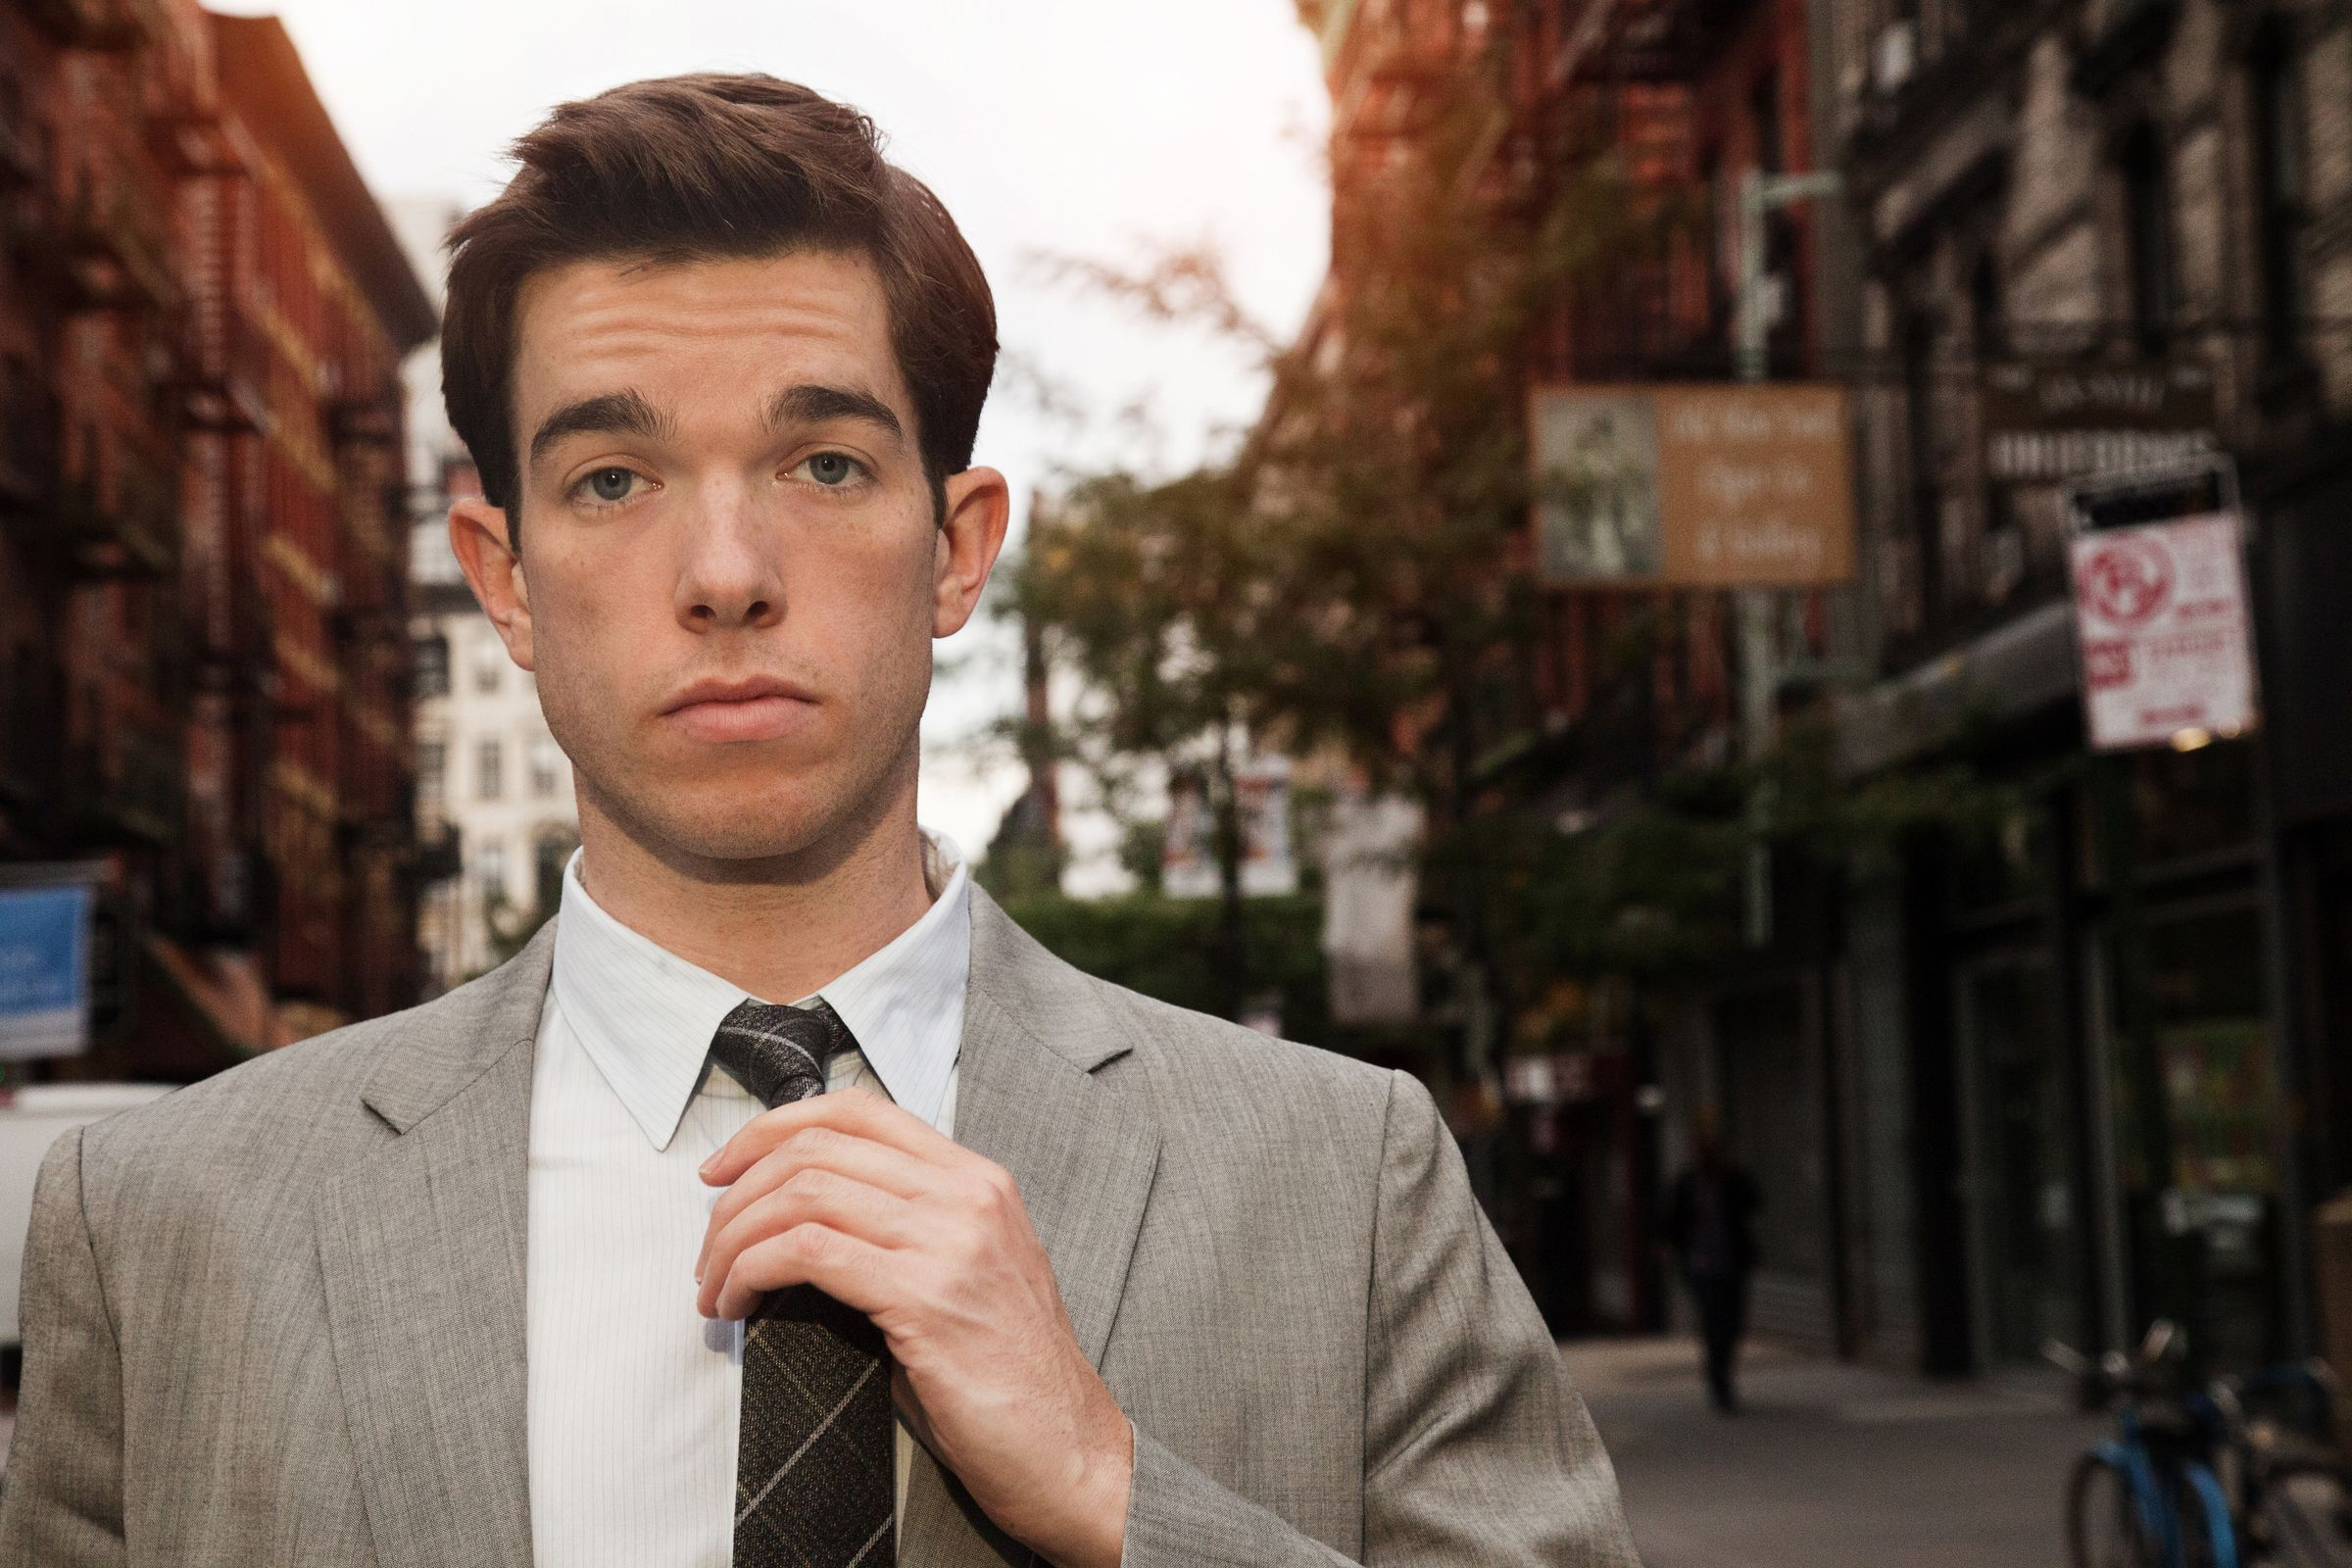 john mulaney tumblr